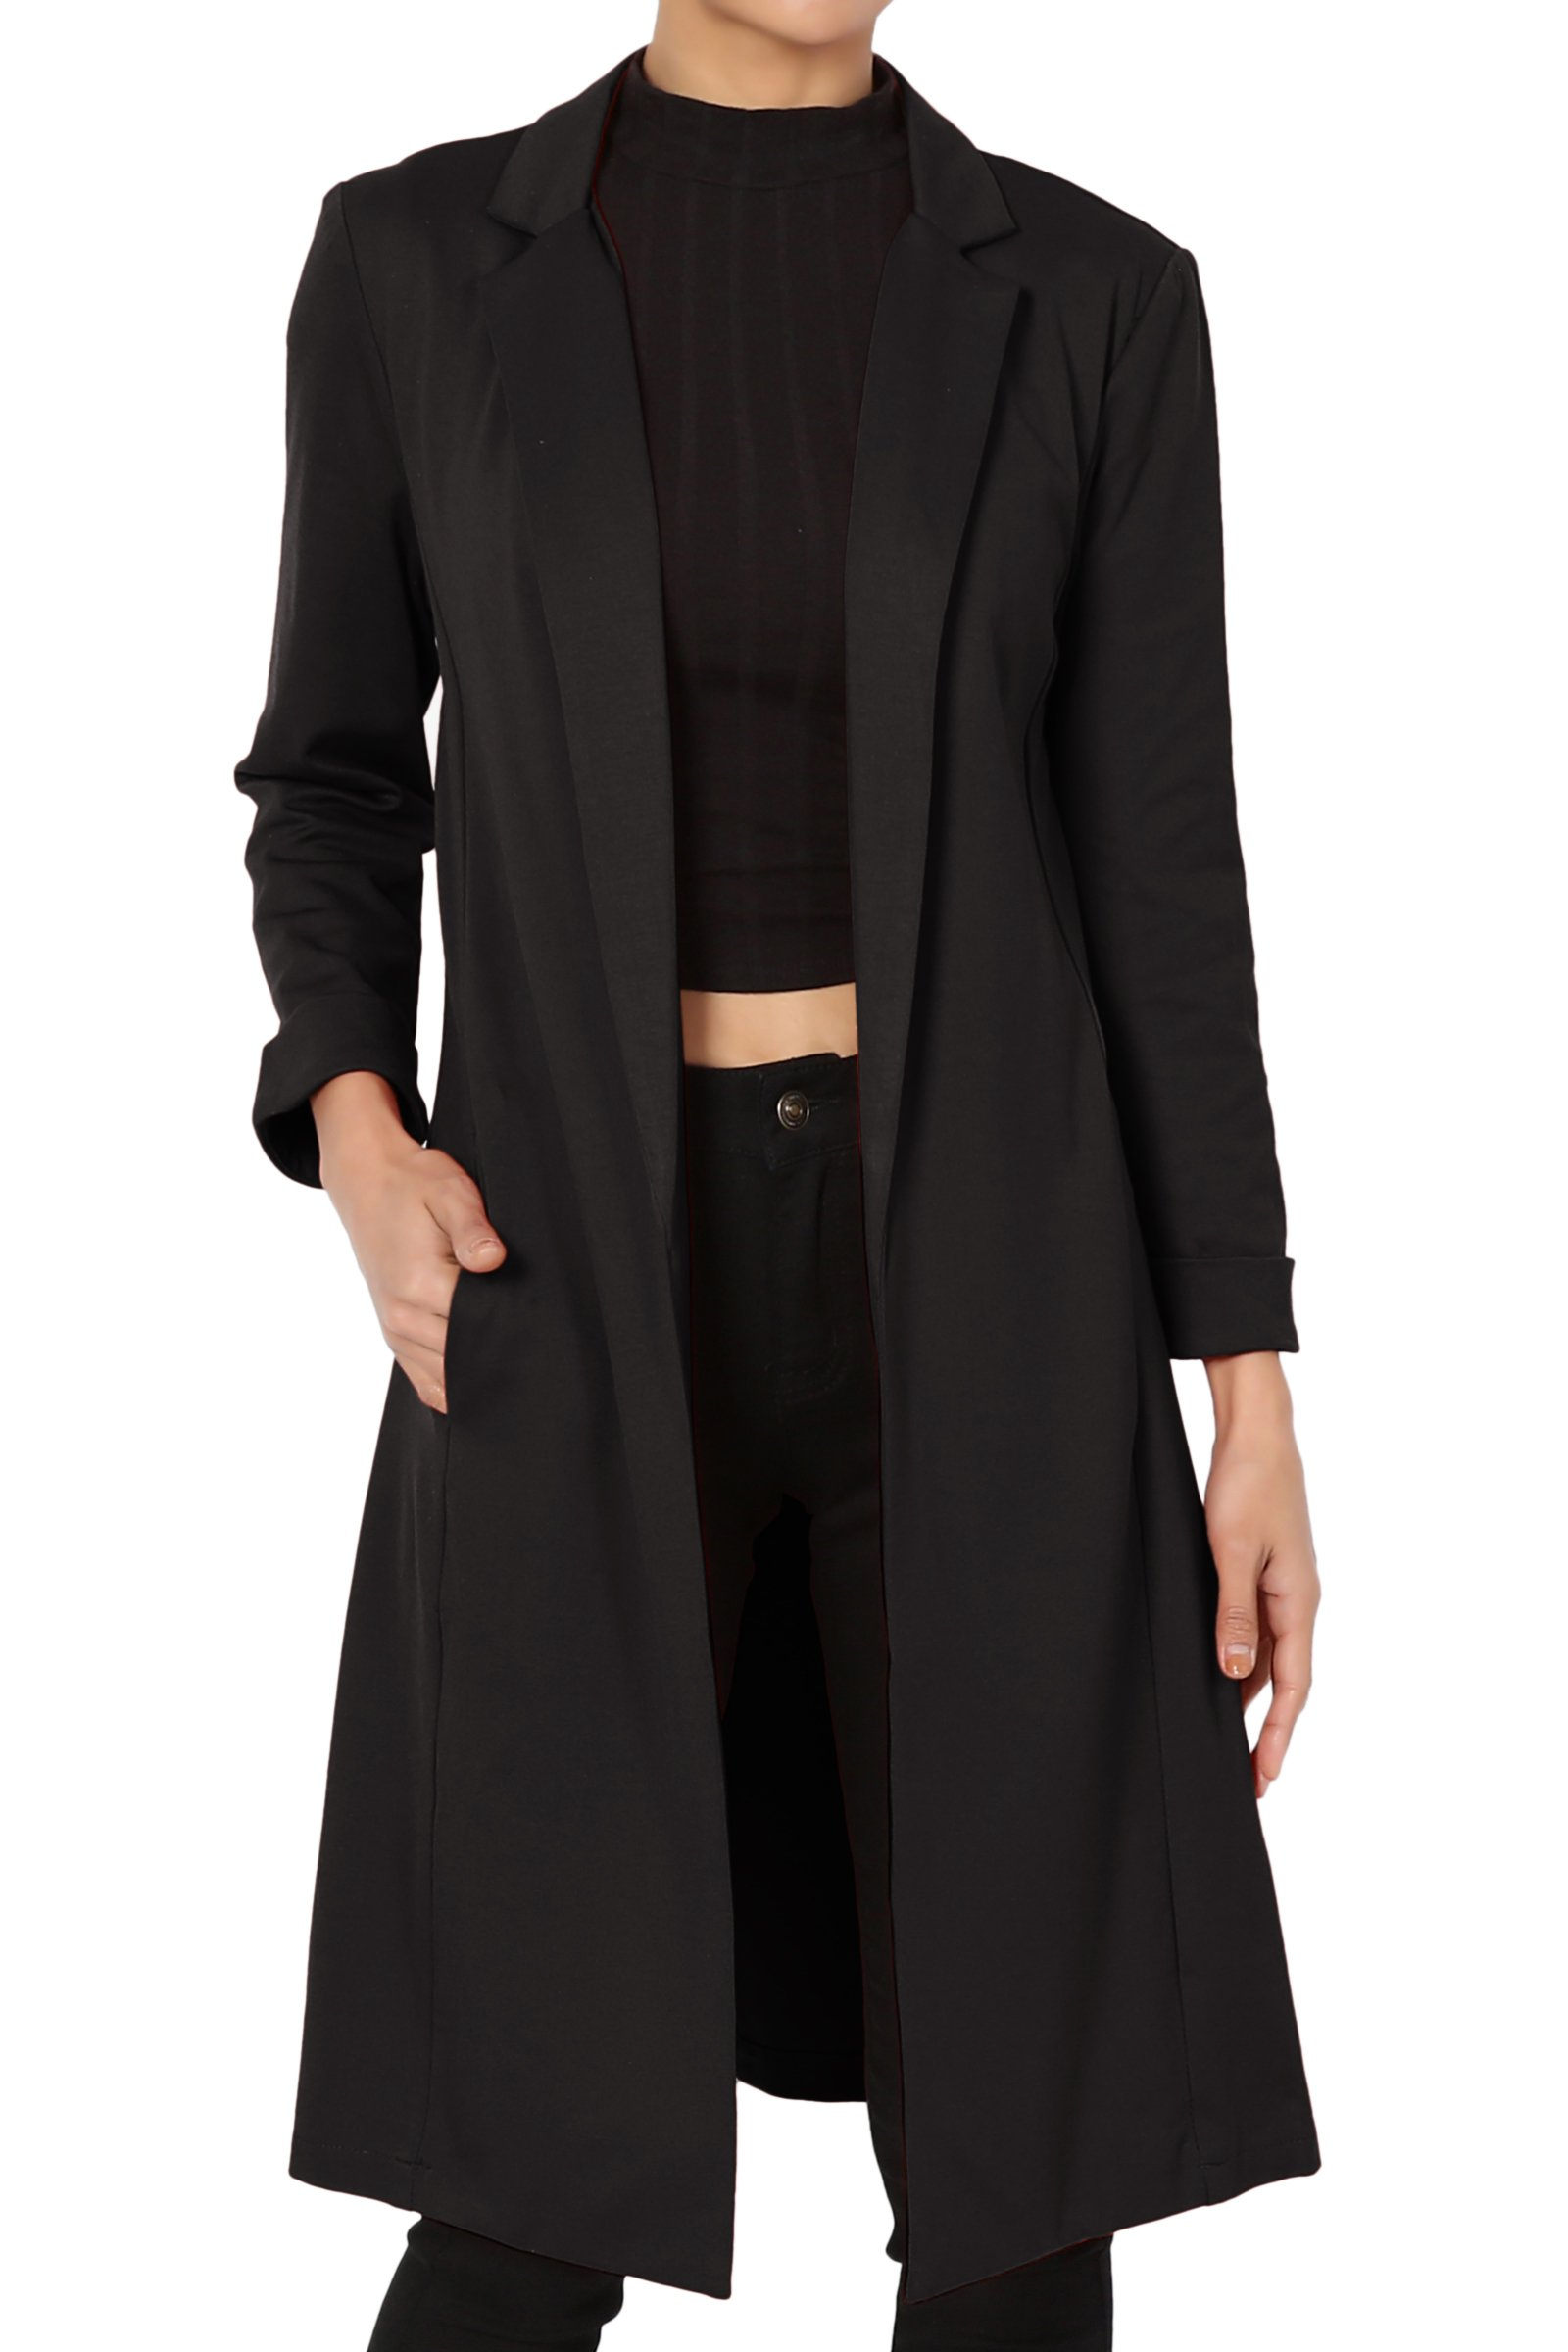 TheMogan Junior's Solid Longline Blazer Day To Night Open Duster Jacket Black M